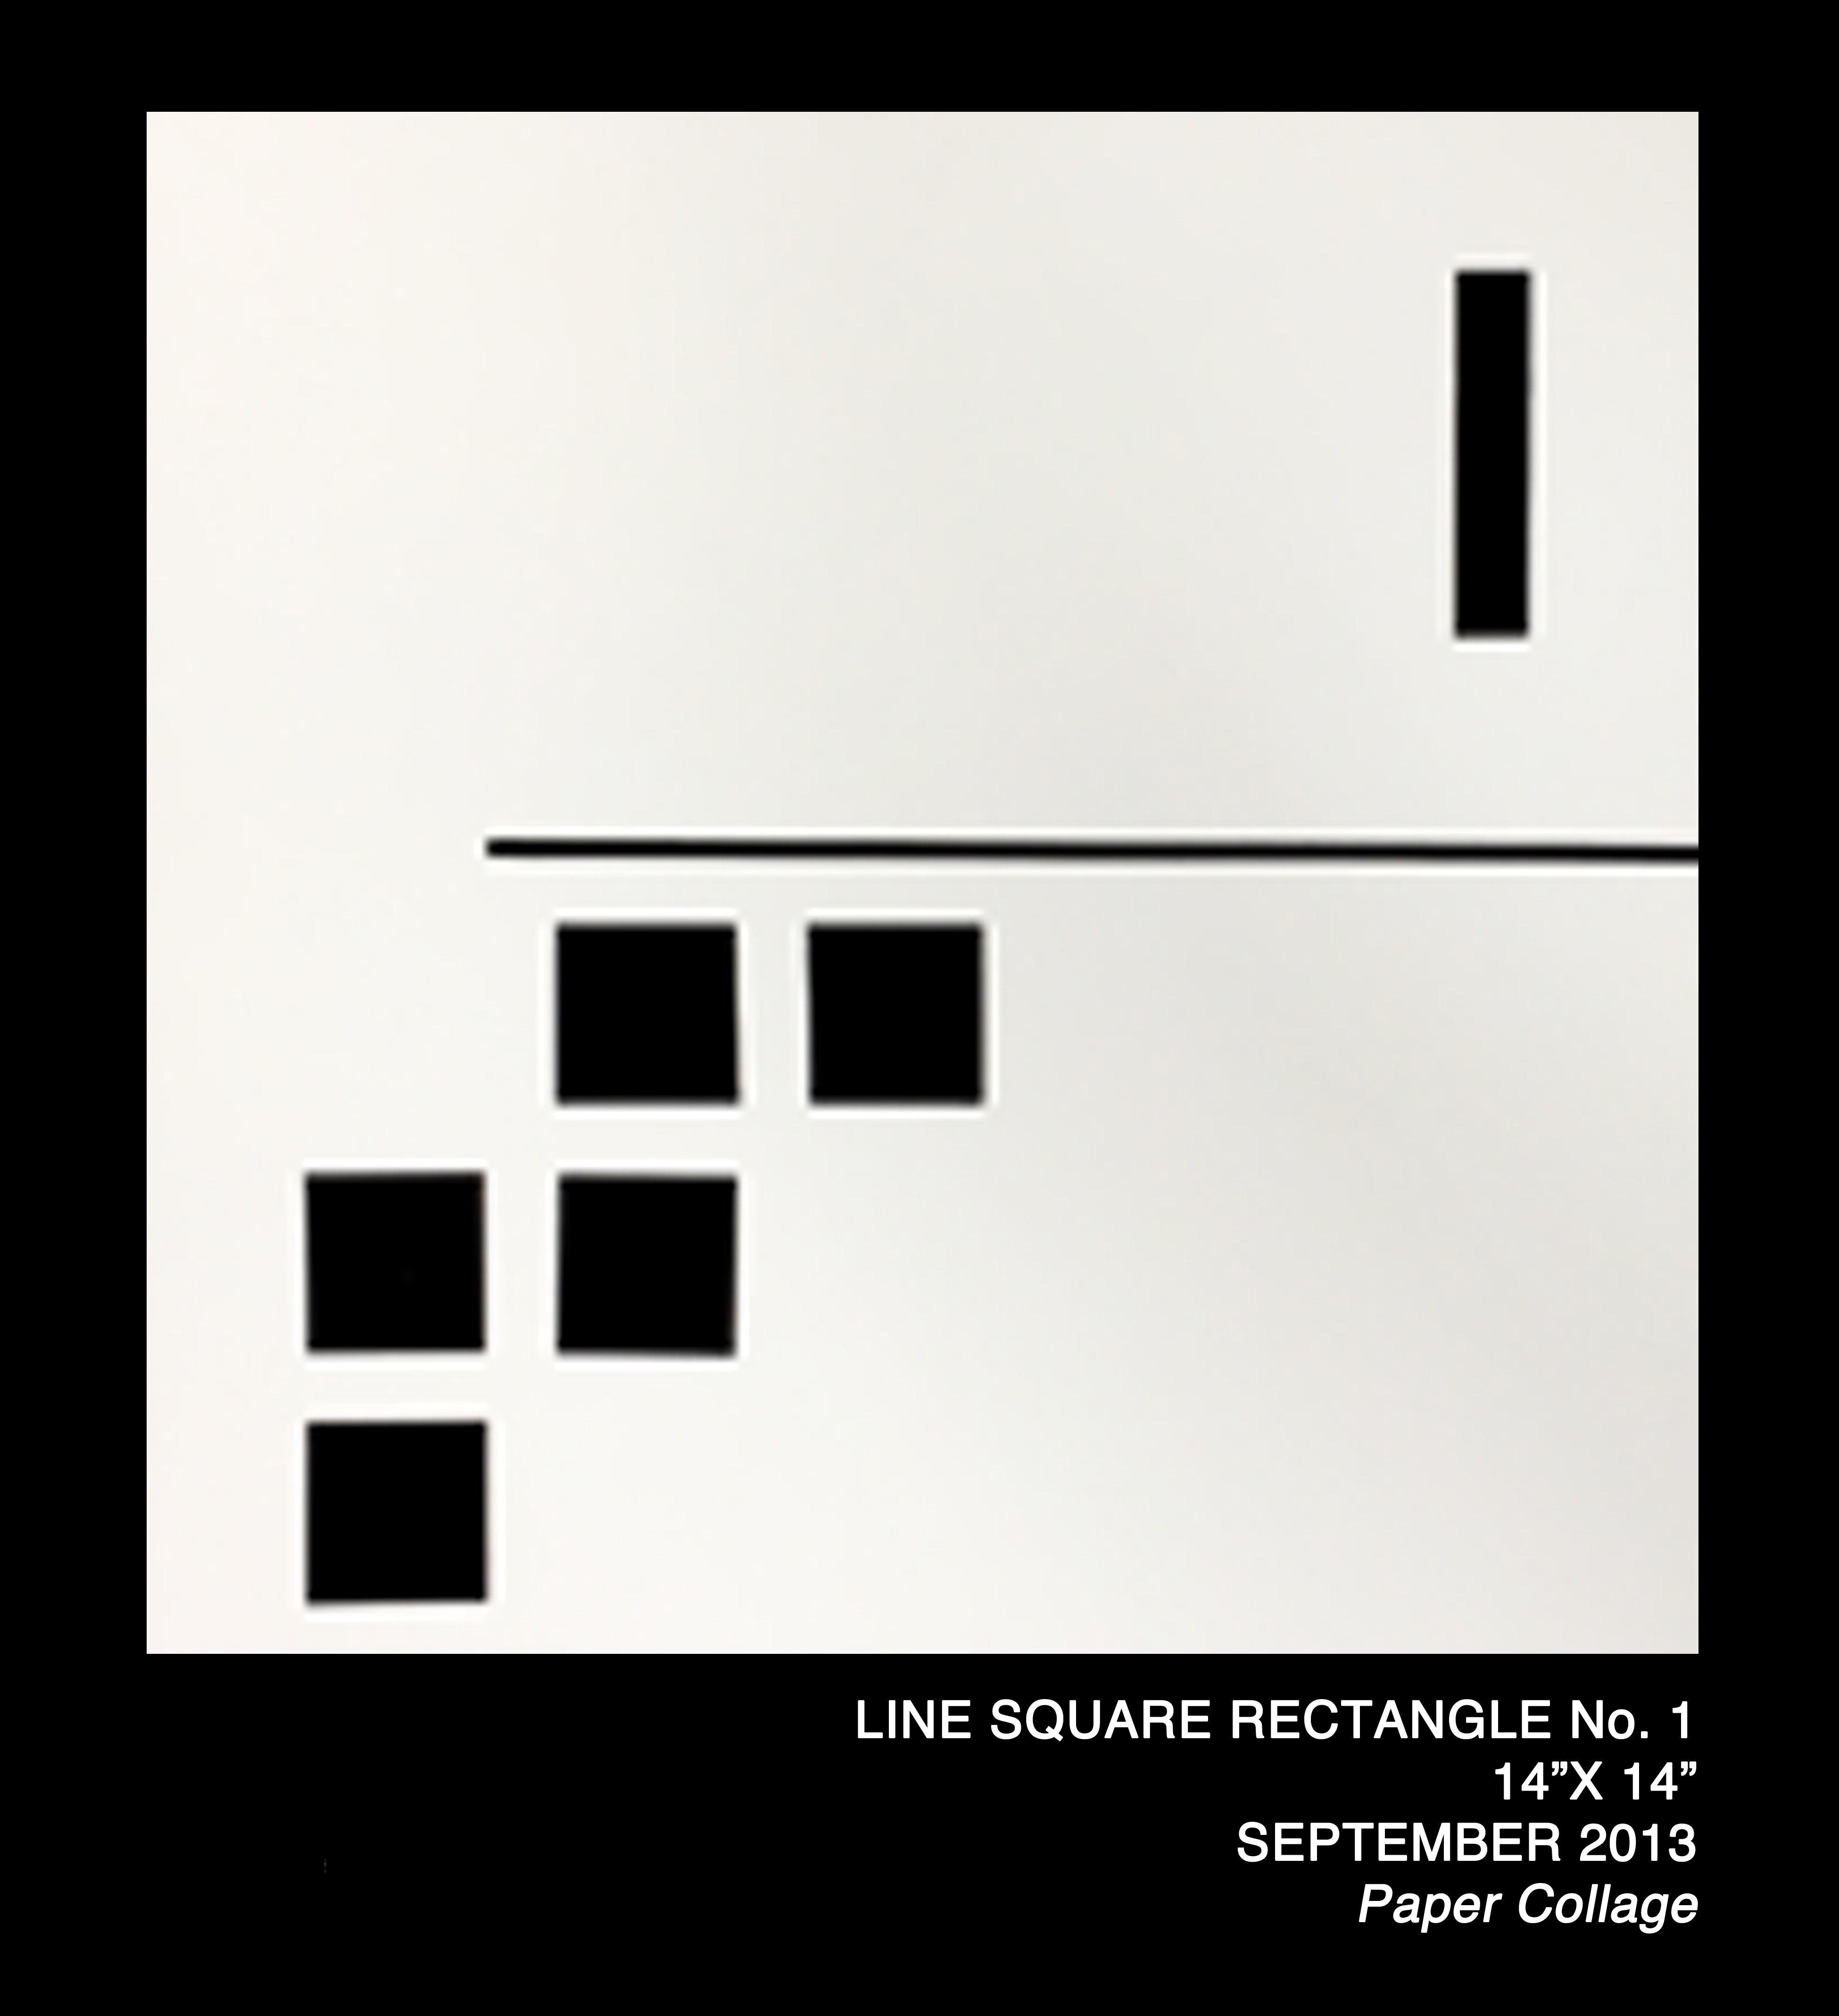 Line Square Rectangle Collage